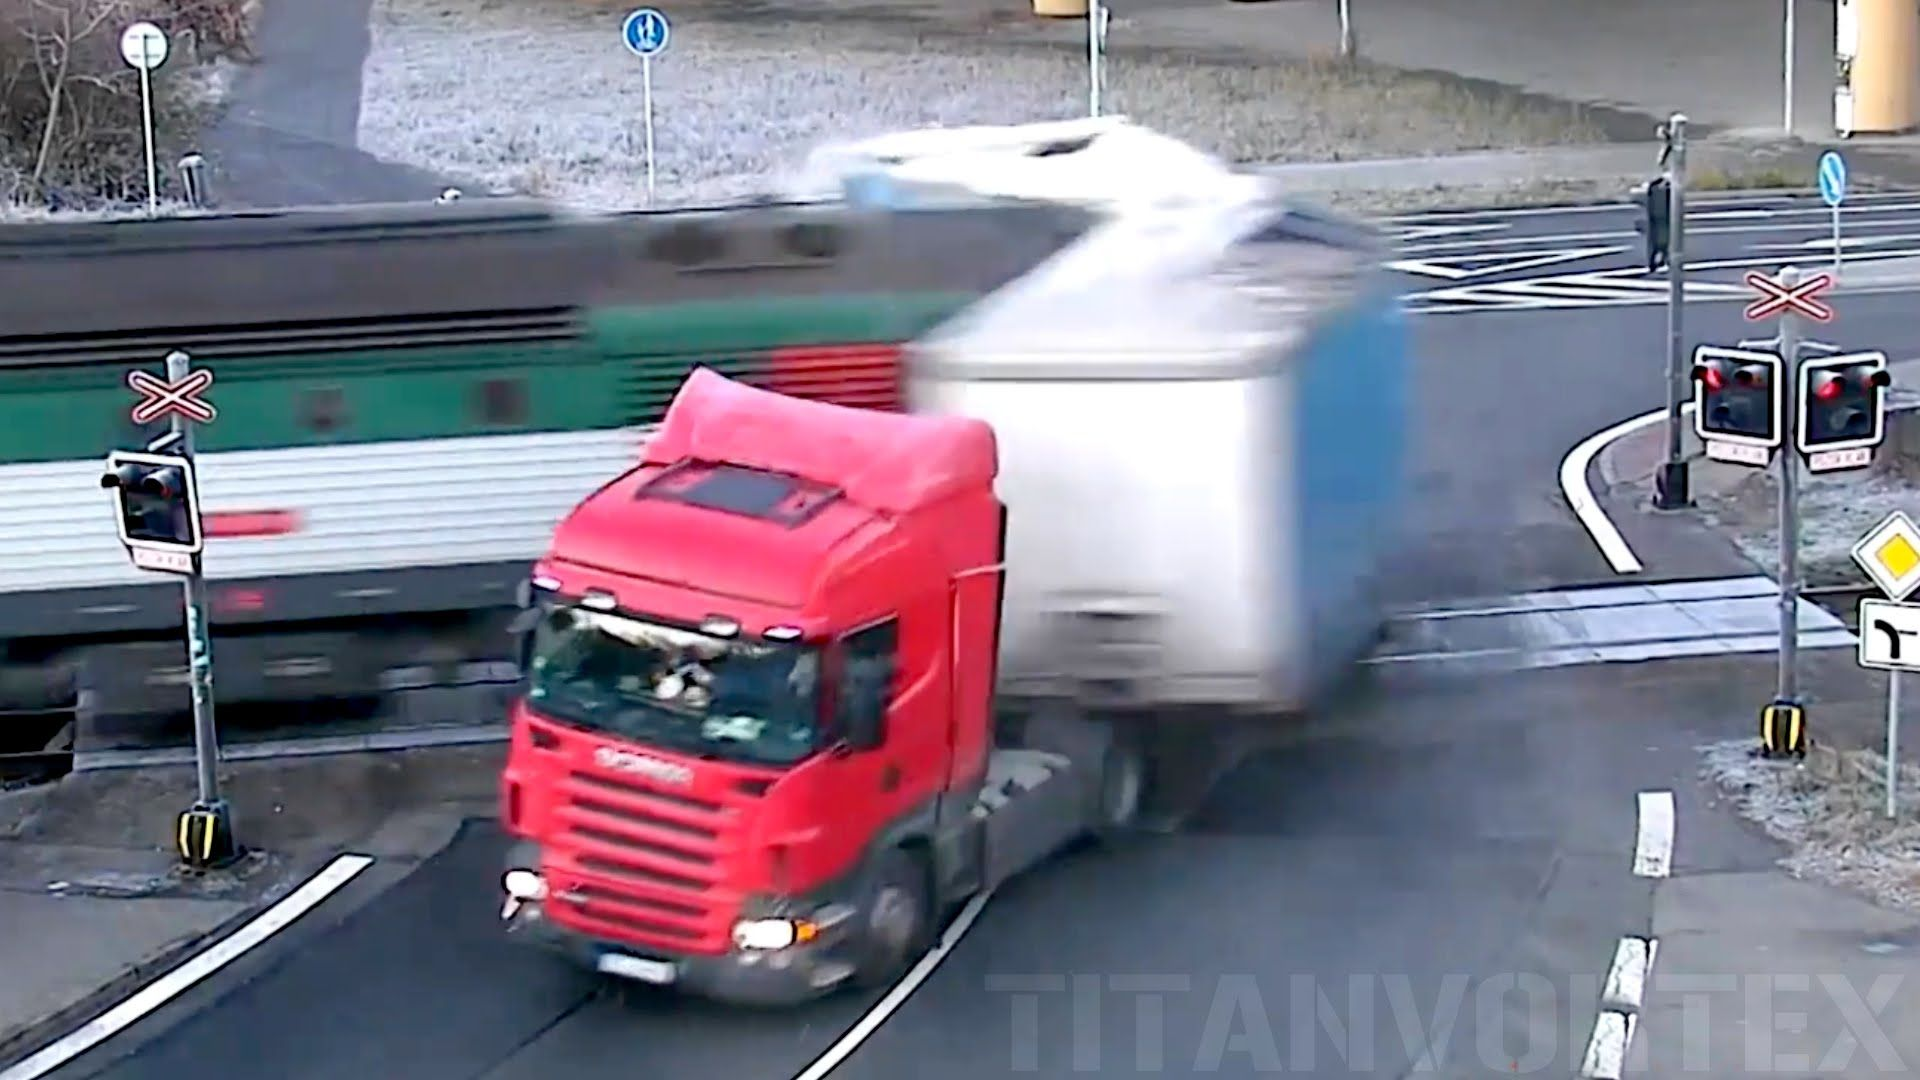 TRAIN SMASHES INTO TRACK